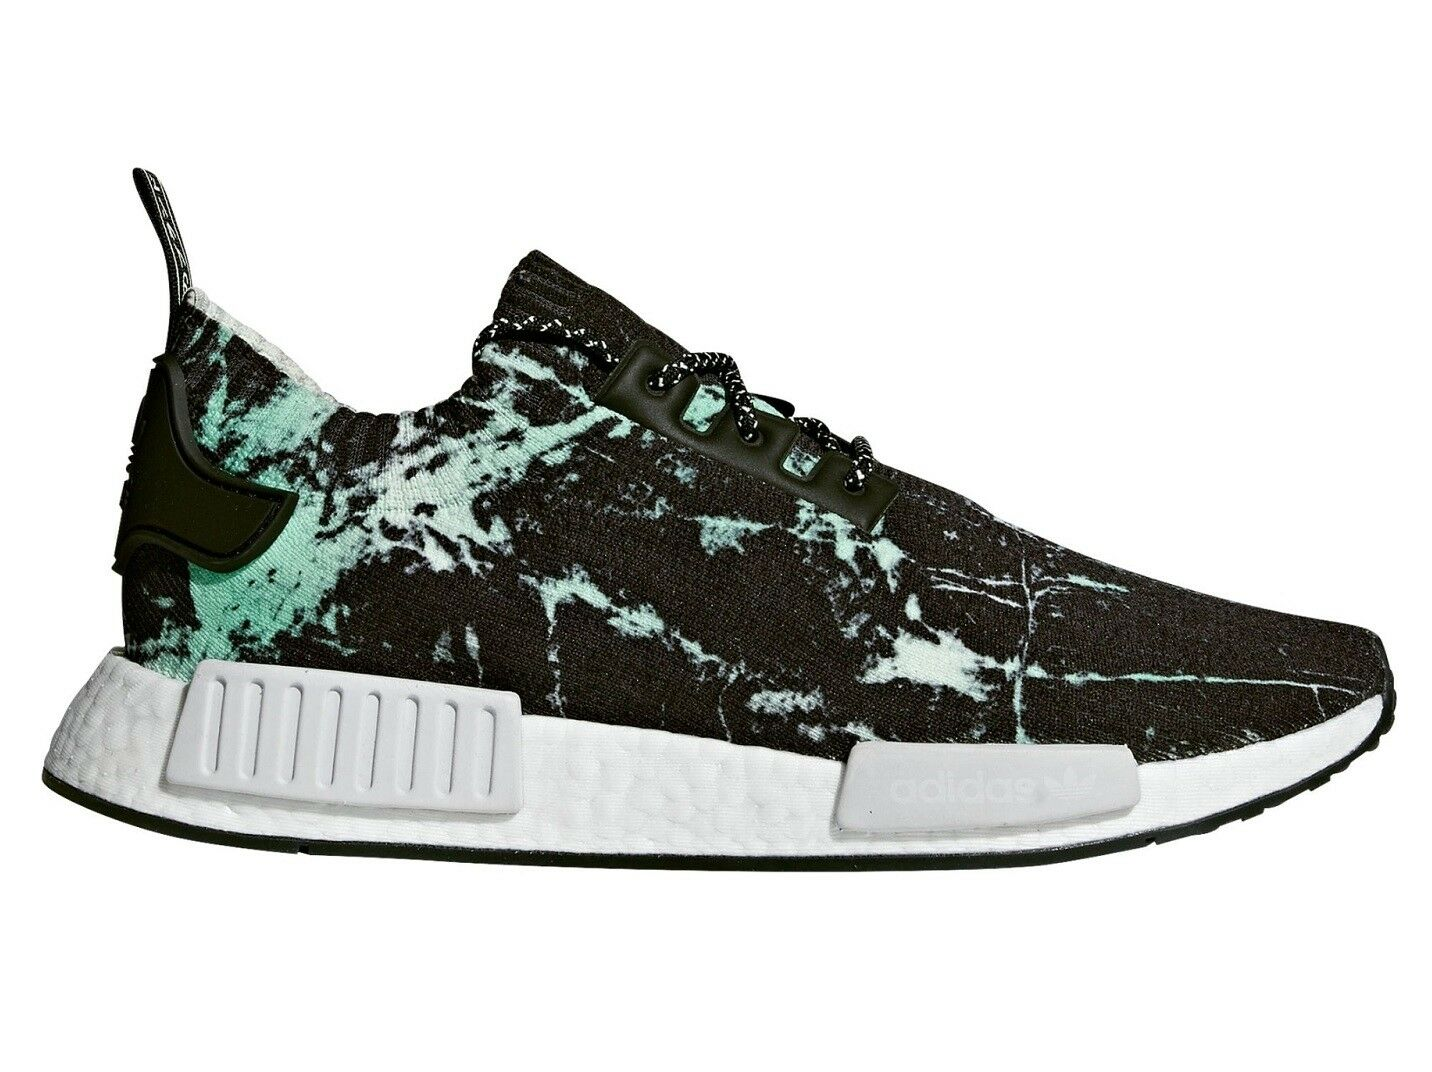 Adidas NMD R1 PK Marble Mens BB7996 Aero Green Black Primeknit shoes Size 5